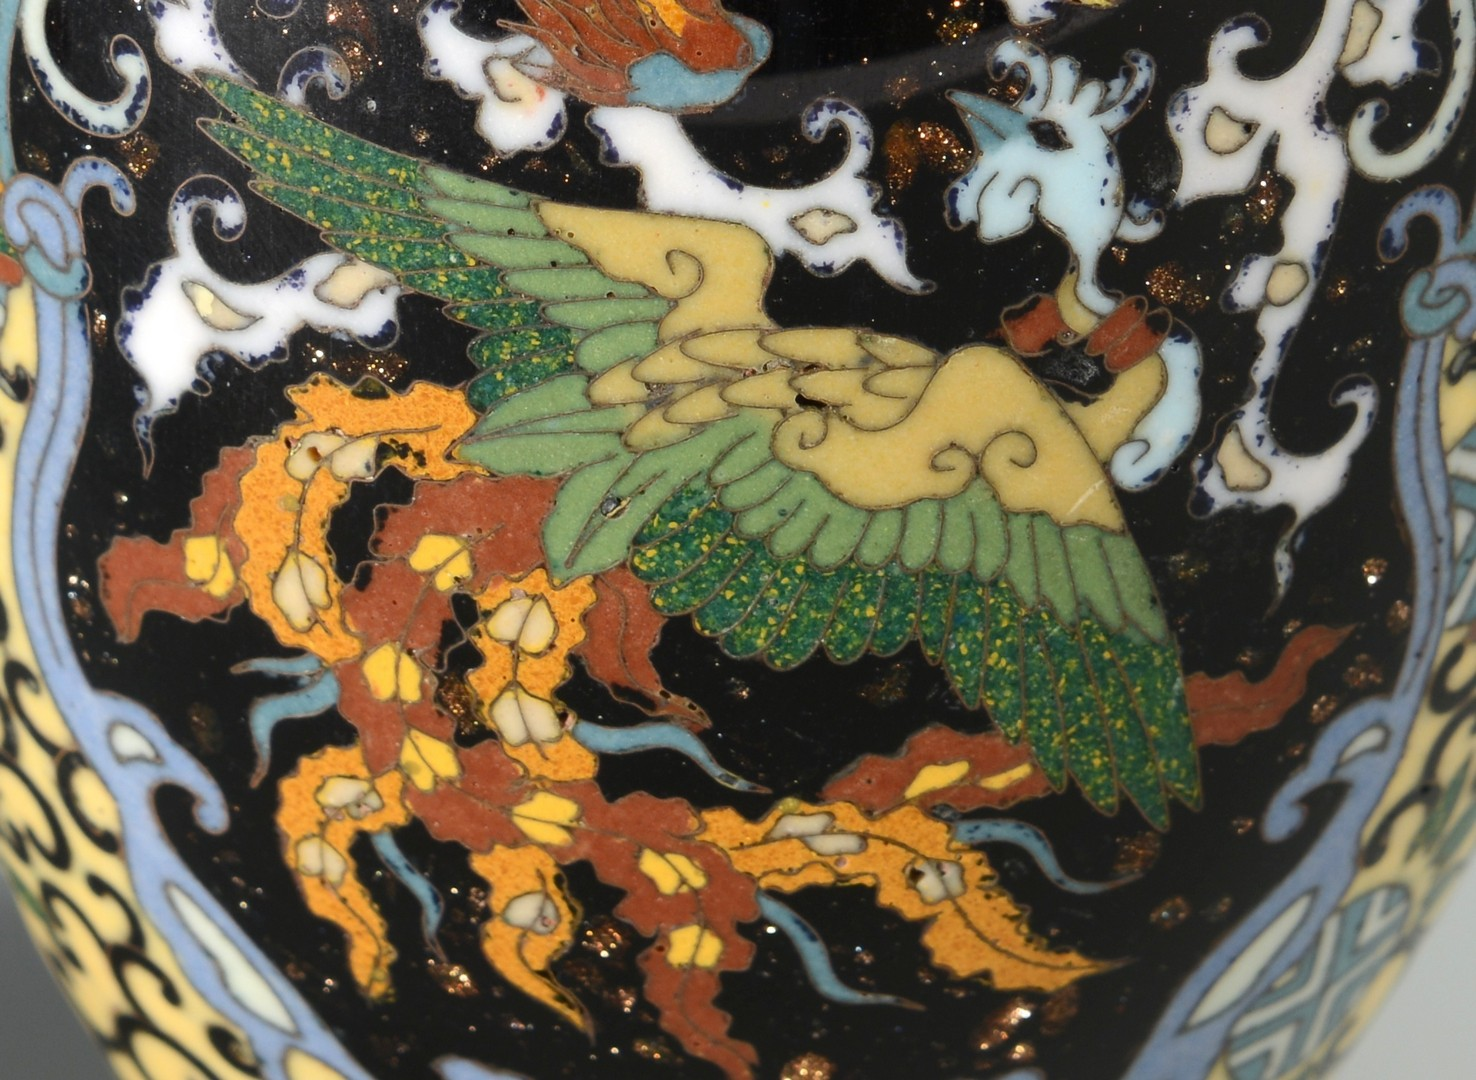 Lot 3594205: 4 Chinese Cloisonne Vases